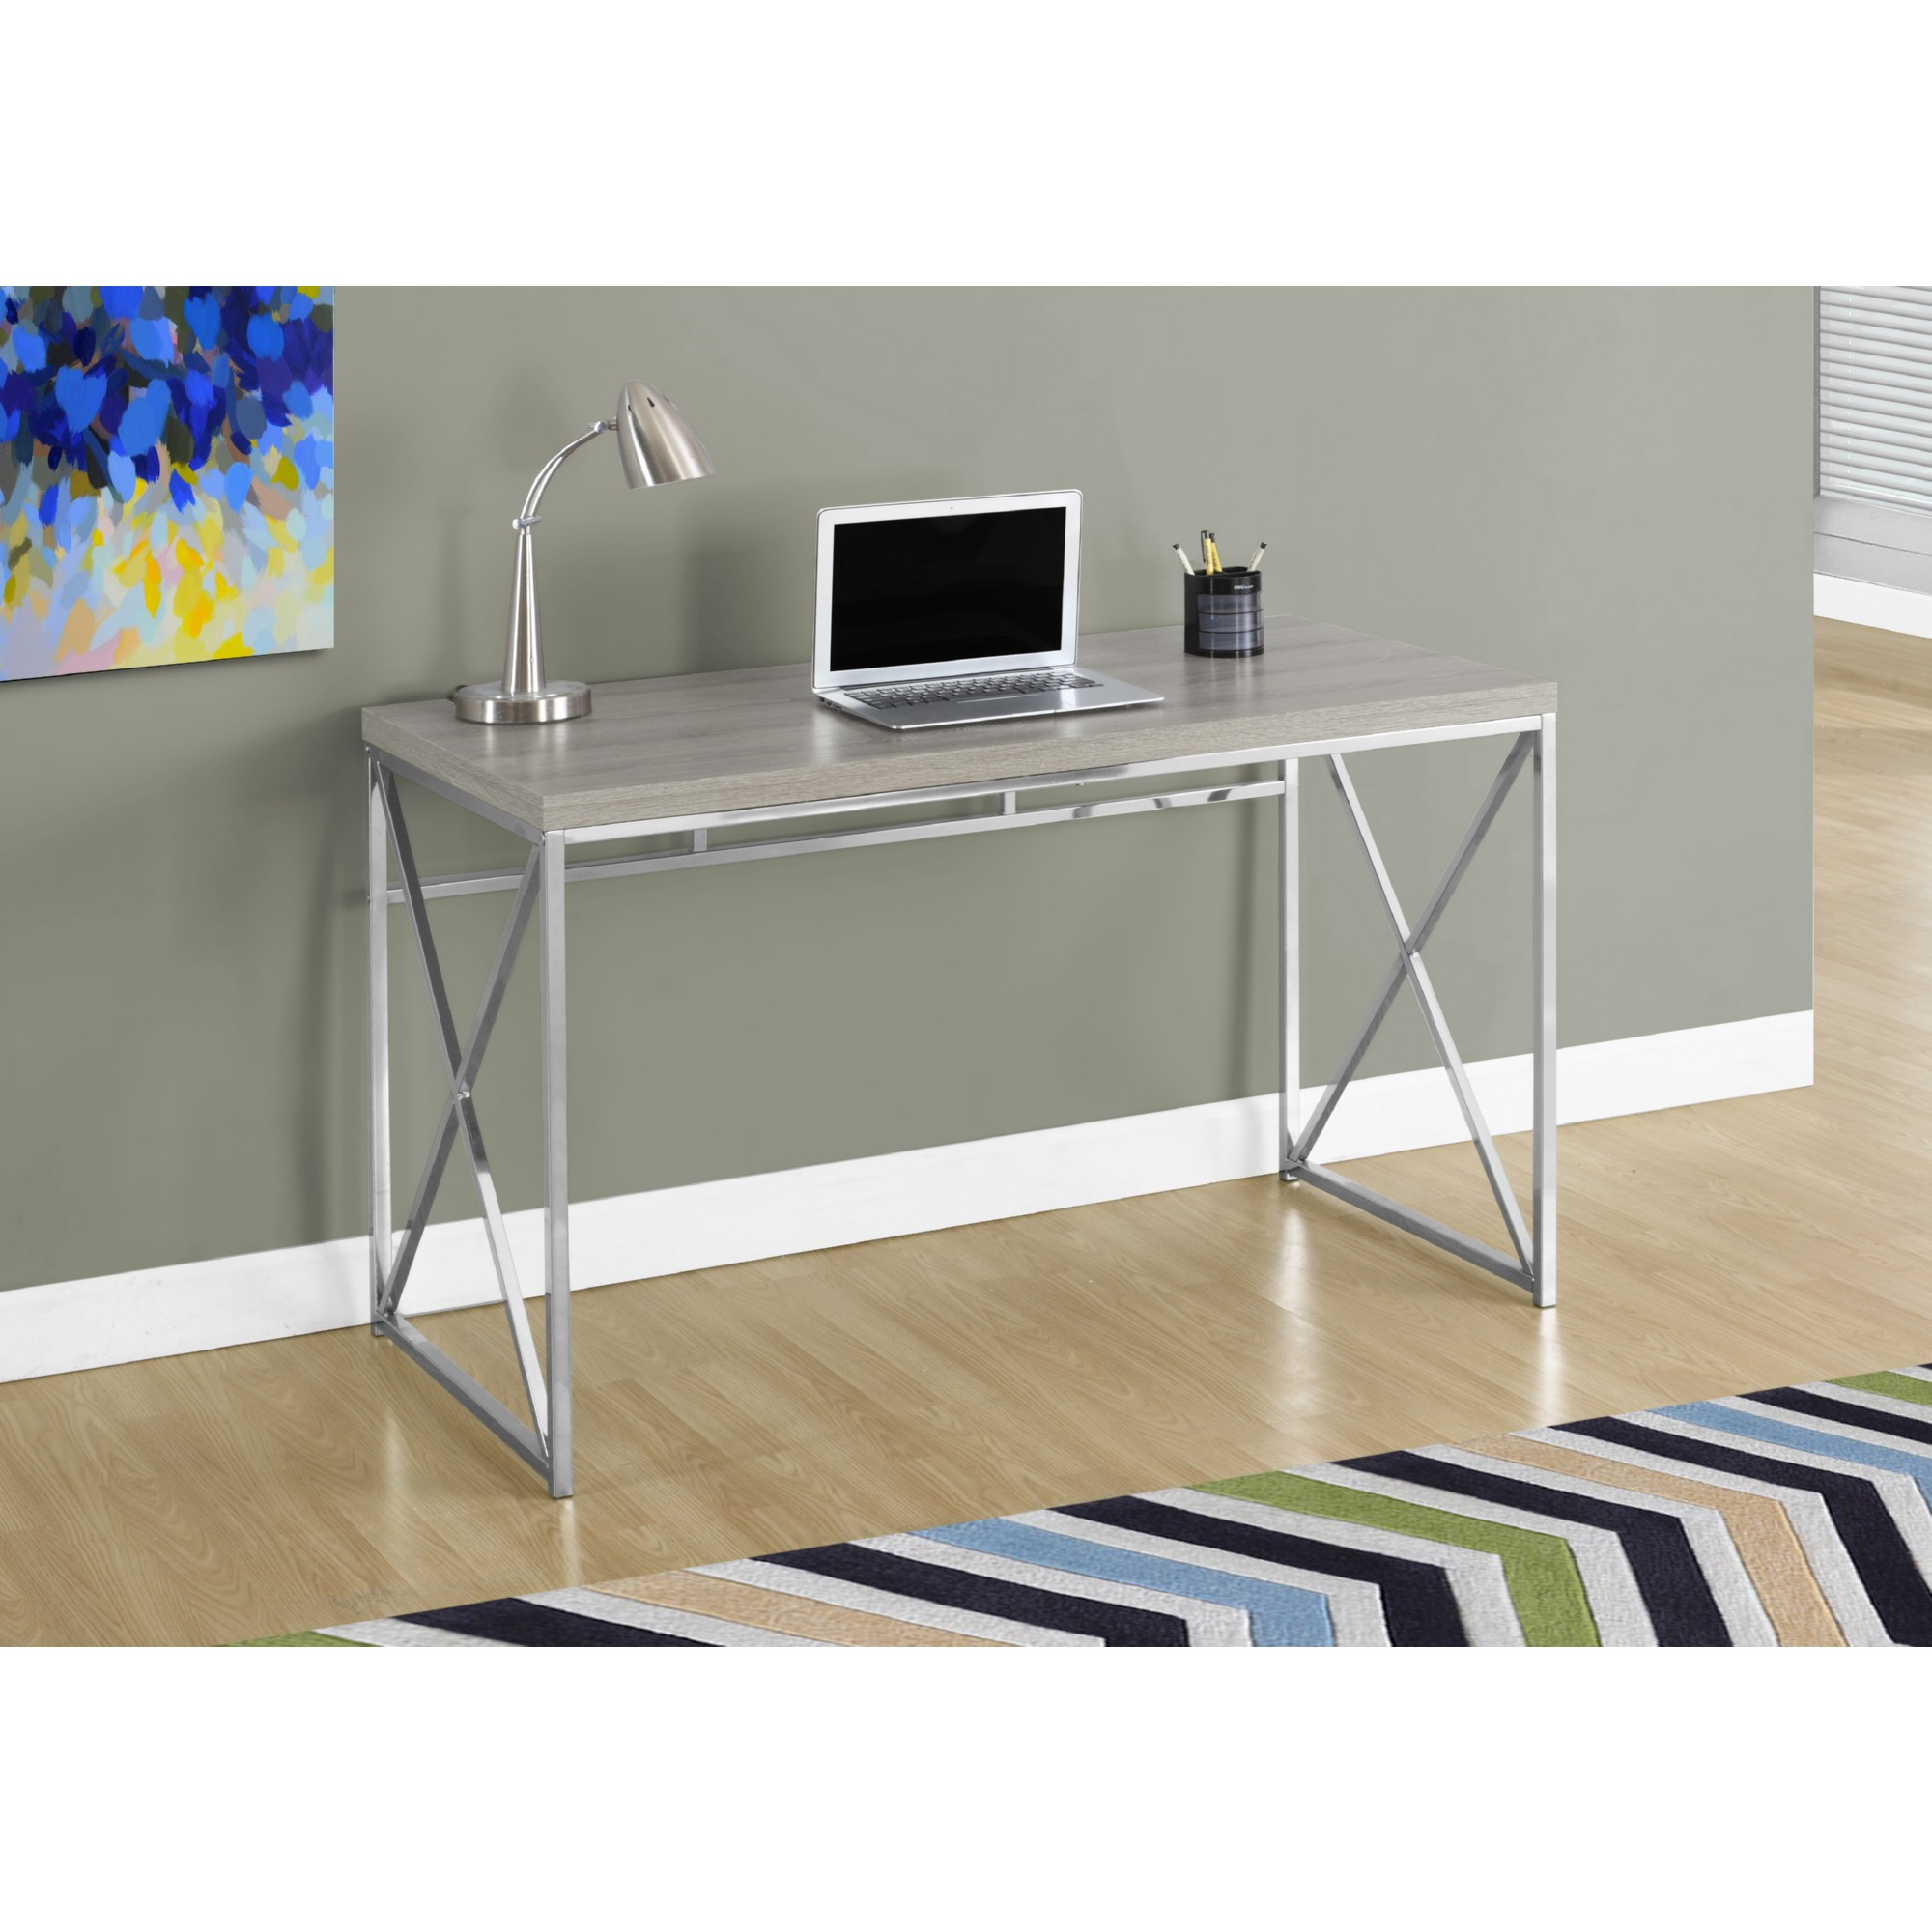 offices luxury table micke computer a and ikea purchase house your station equivalent tables desk white work for